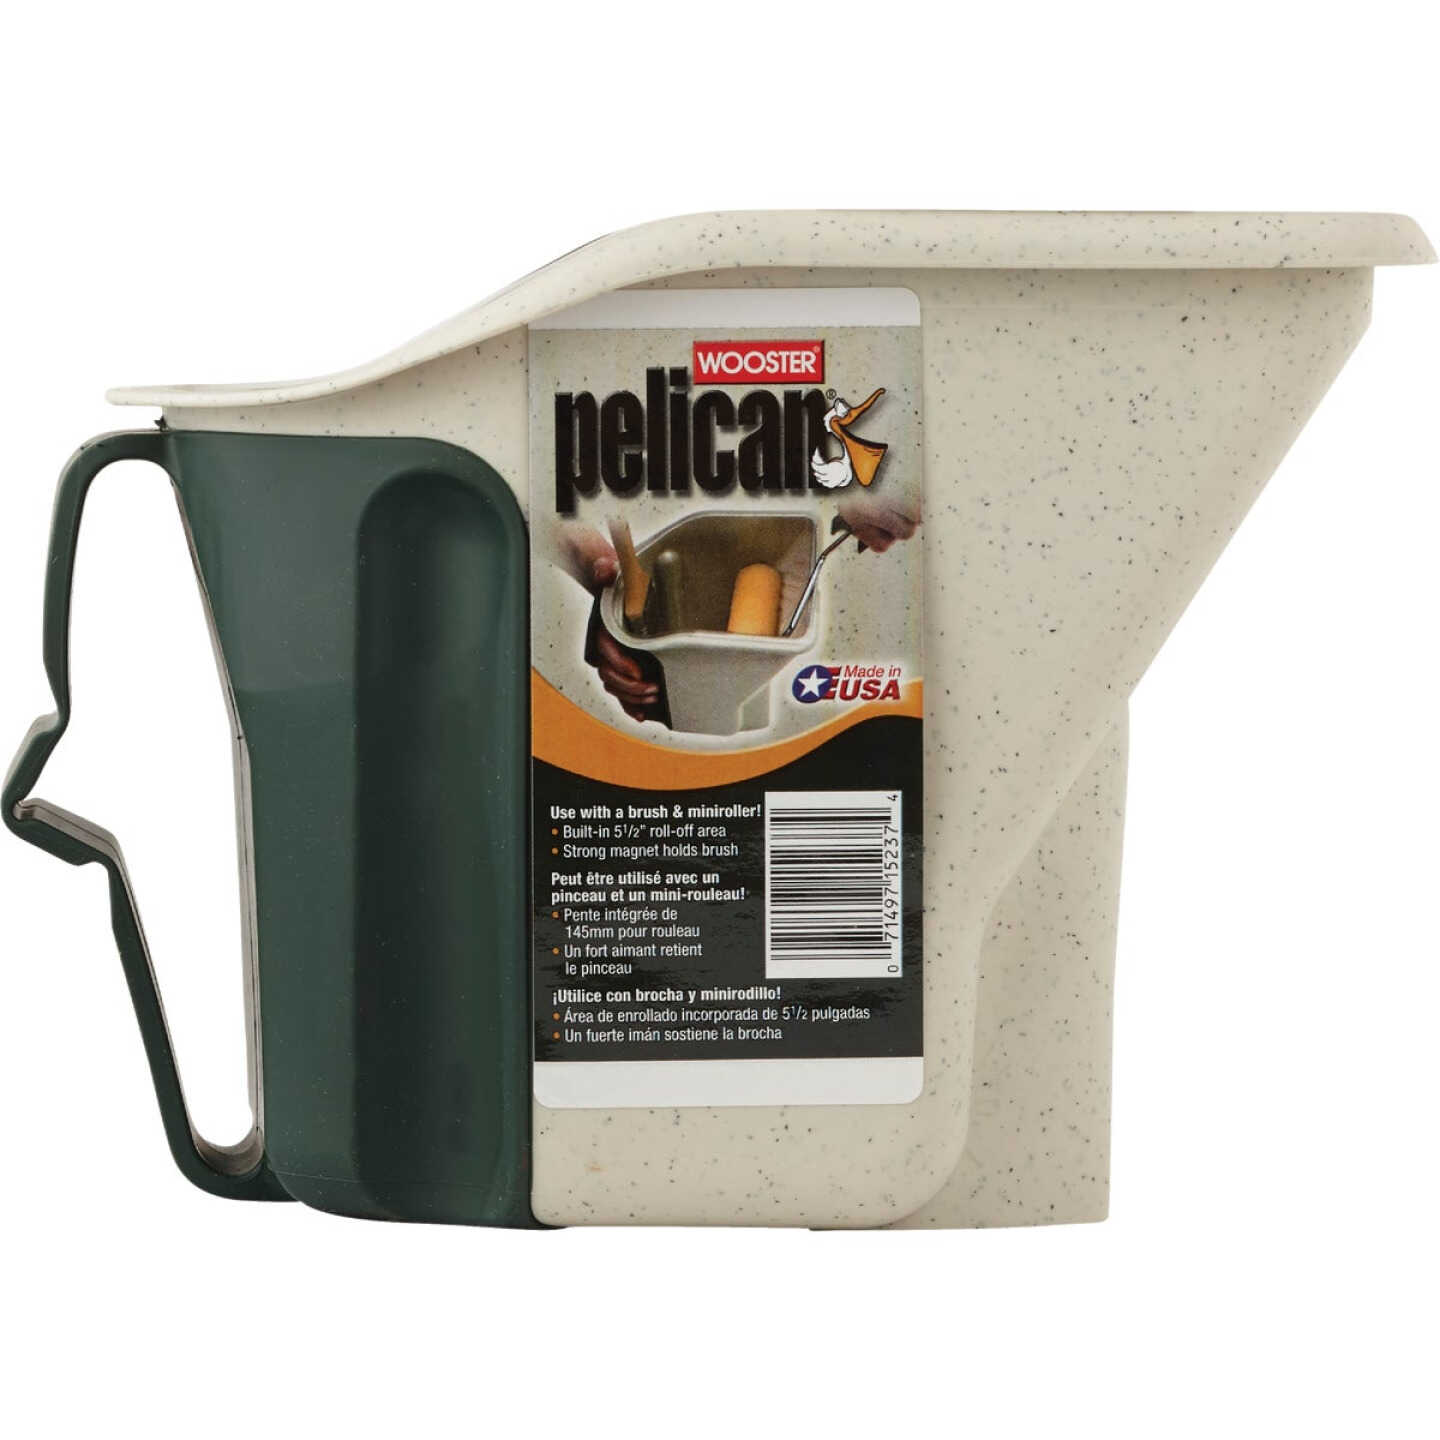 Wooster Pelican 1 Qt. Green & White Painter's Bucket with Magnetic Brush Holder Image 2